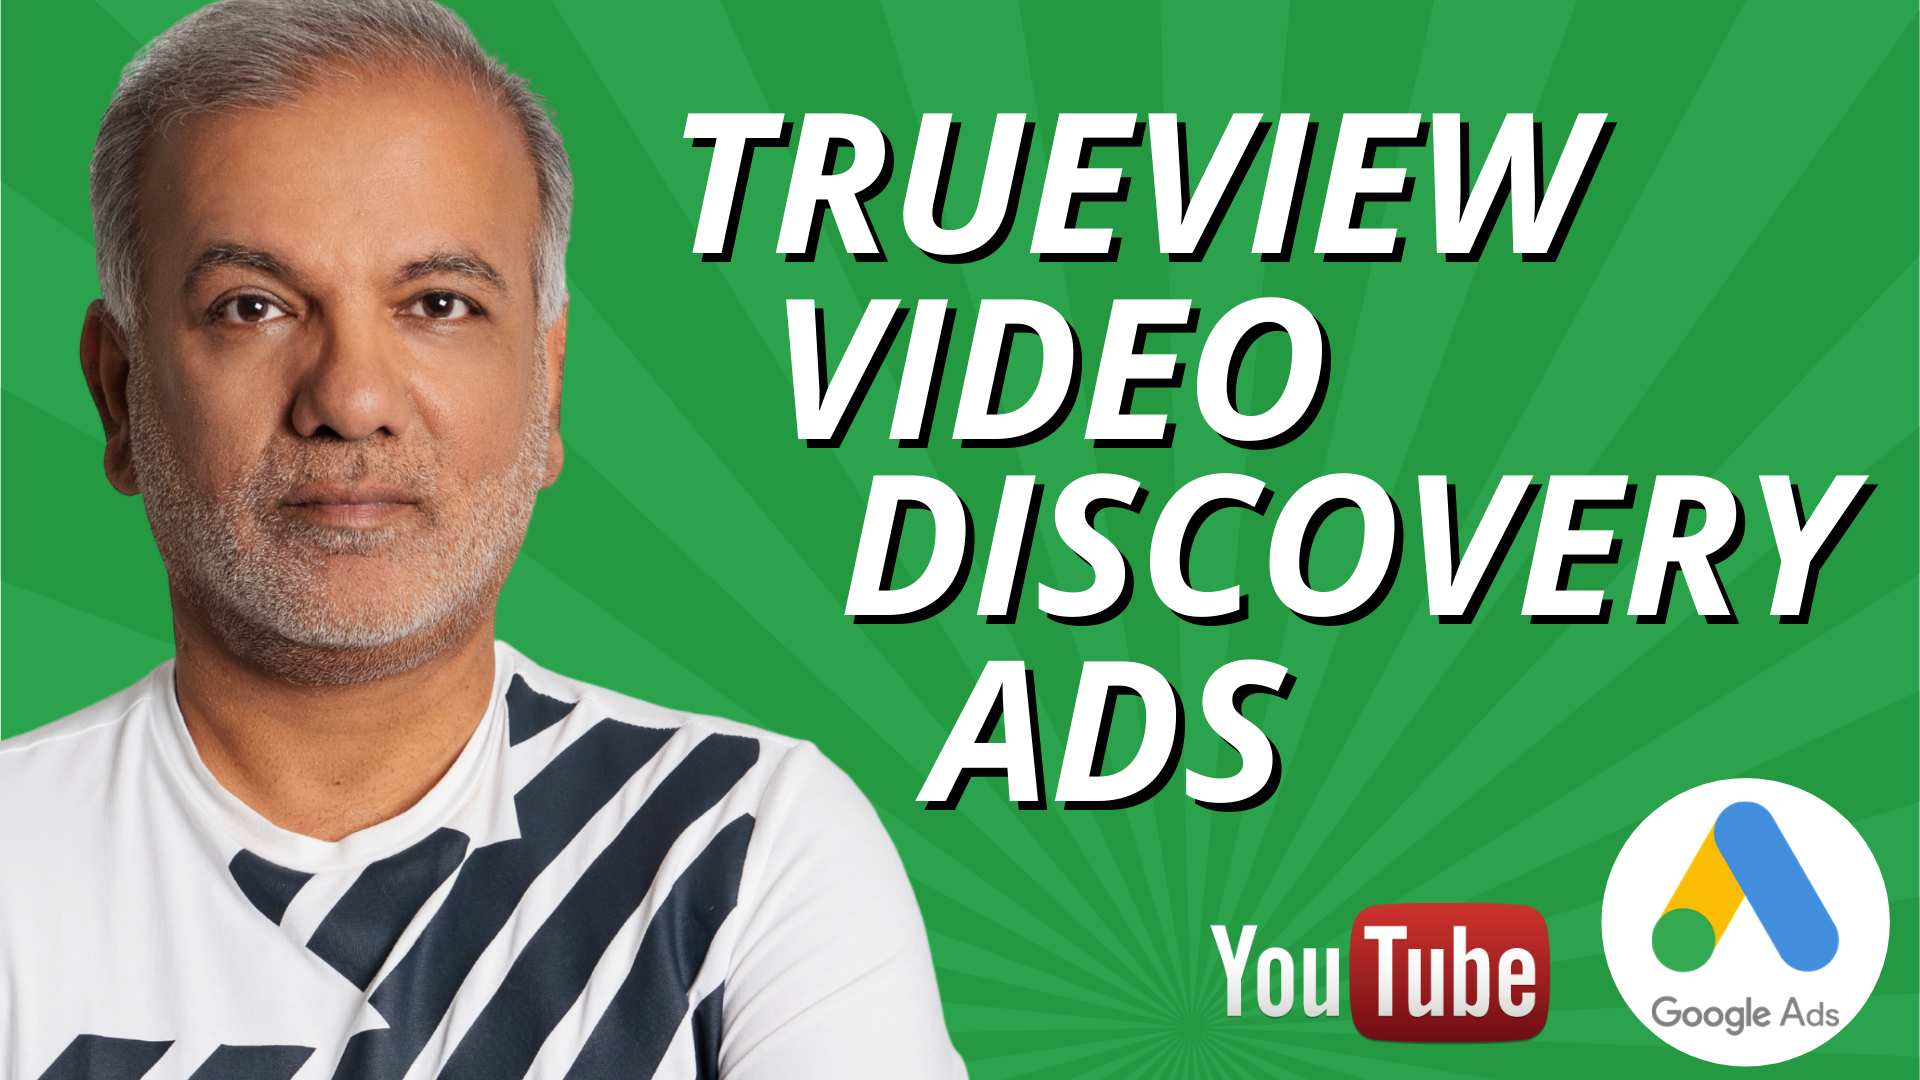 How to Set Up YouTube TrueView Video Discovery Ads